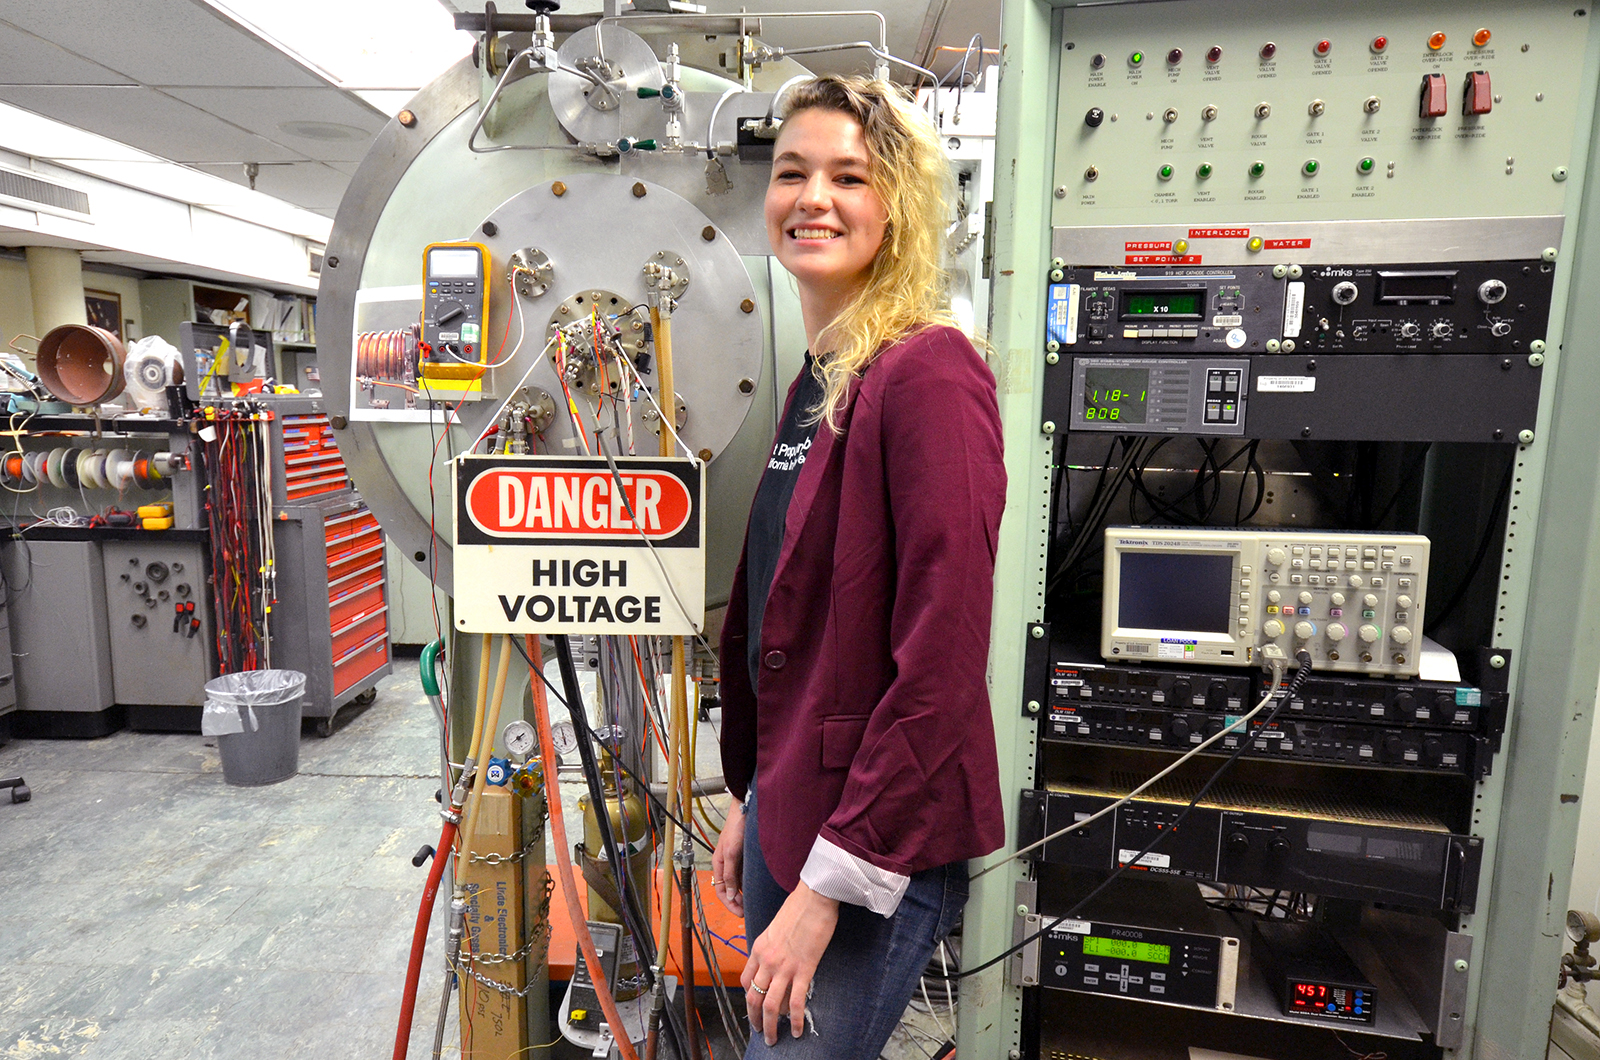 JPL intern Camille Yoke stands in front of the Danger, High Voltage sign in her lab at JPL